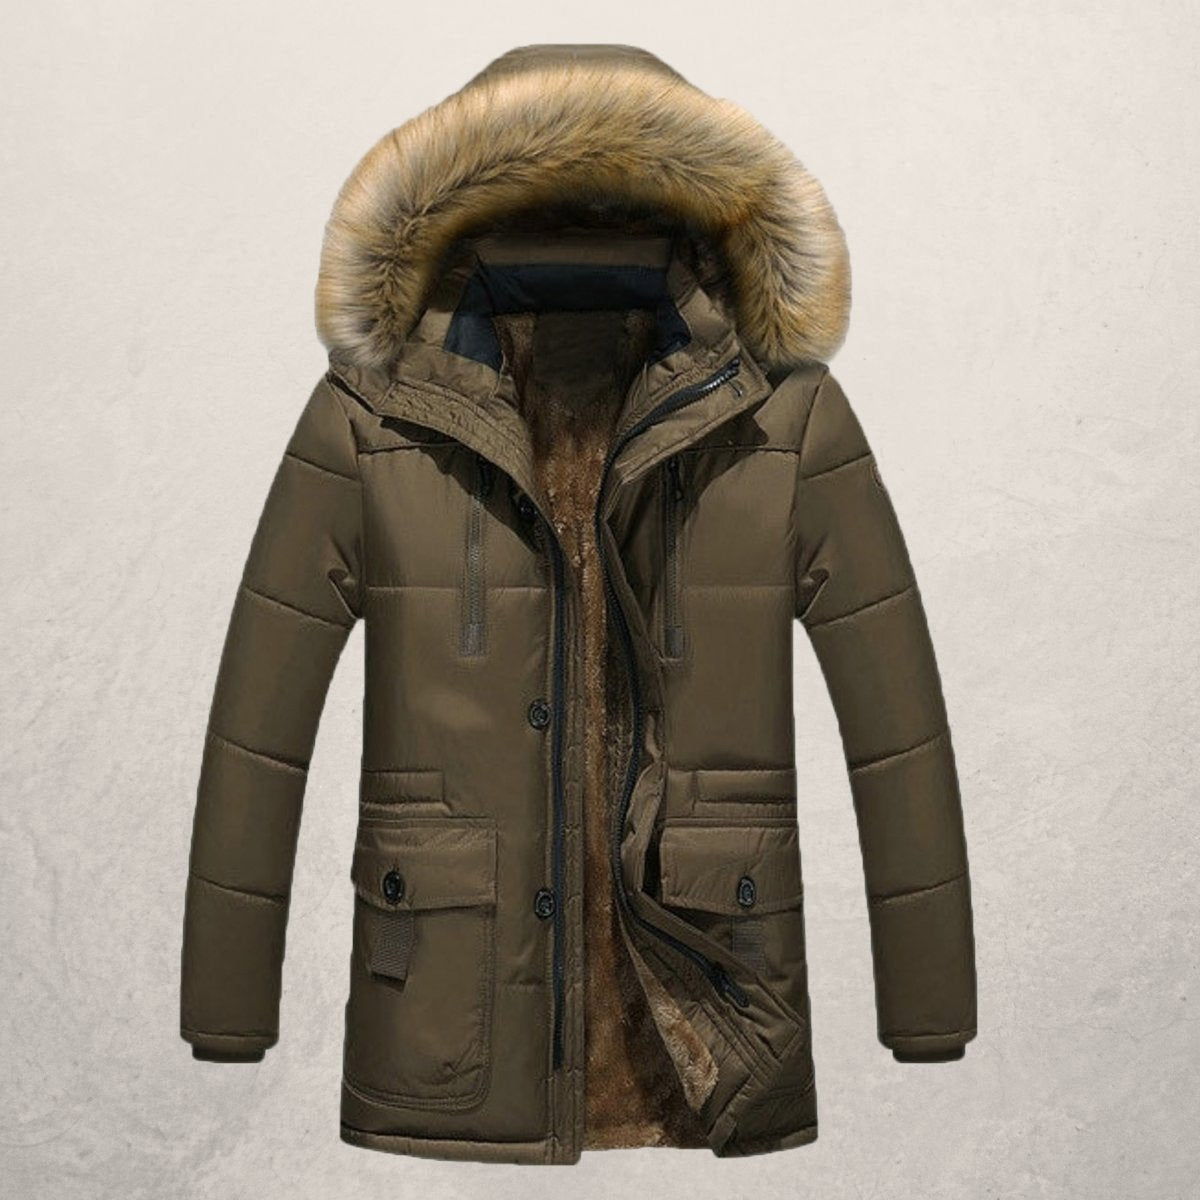 Humberto - Modieuze warme winter parka